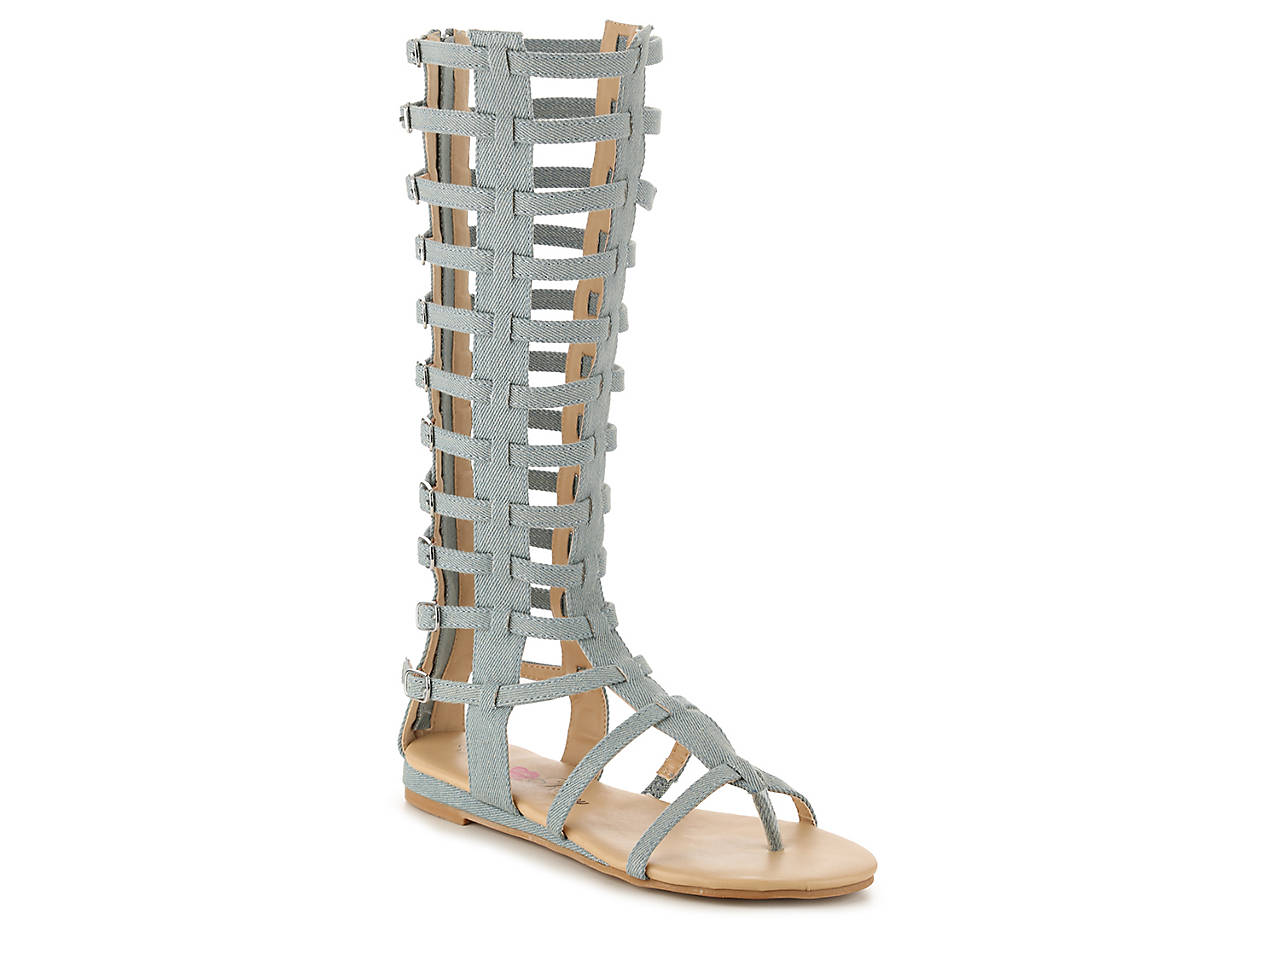 Copa Gladiator Sandal by Penny Loves Kenny